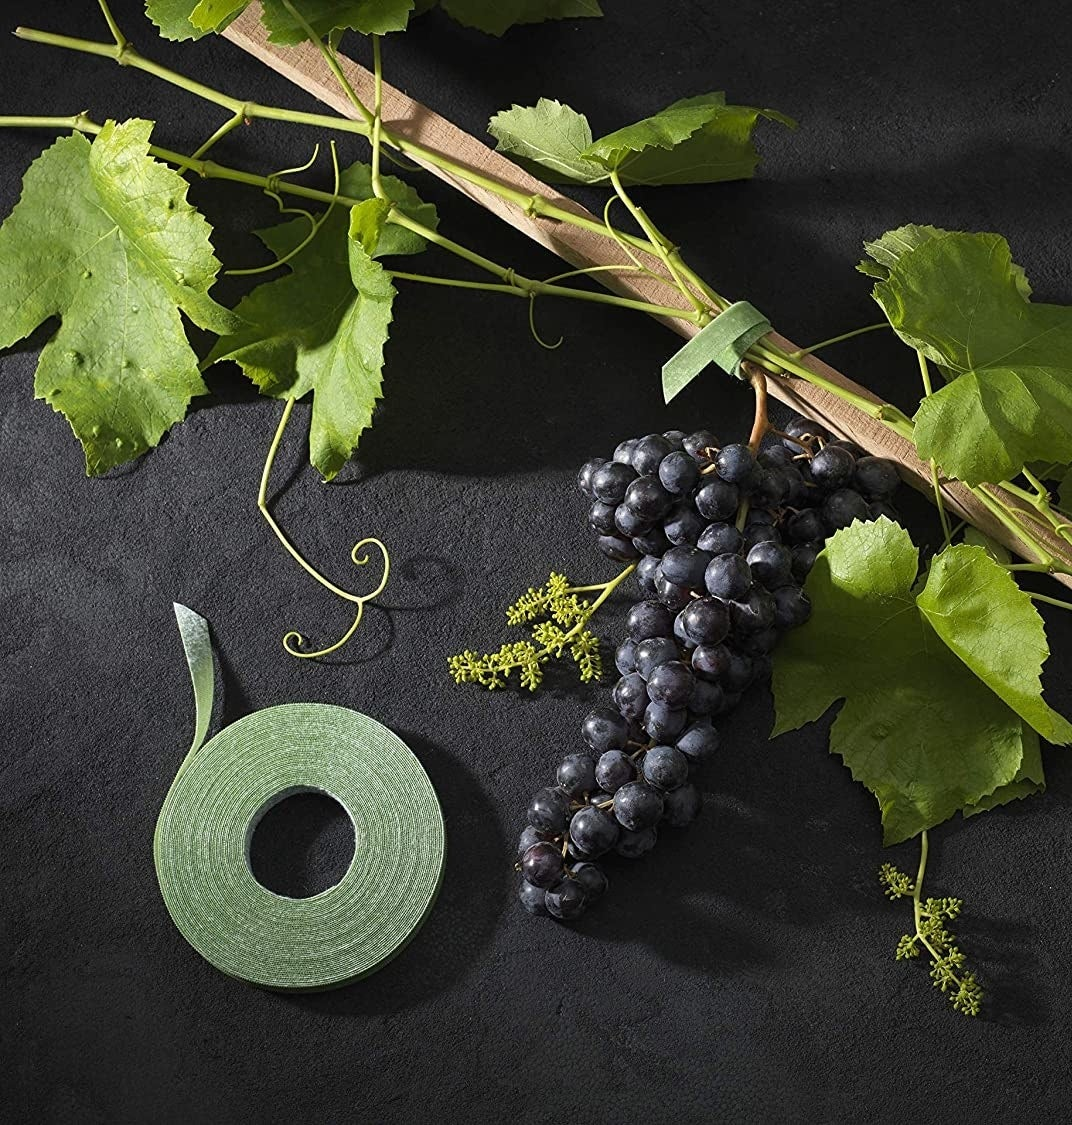 A roll of garden tape on a sprig of grapes